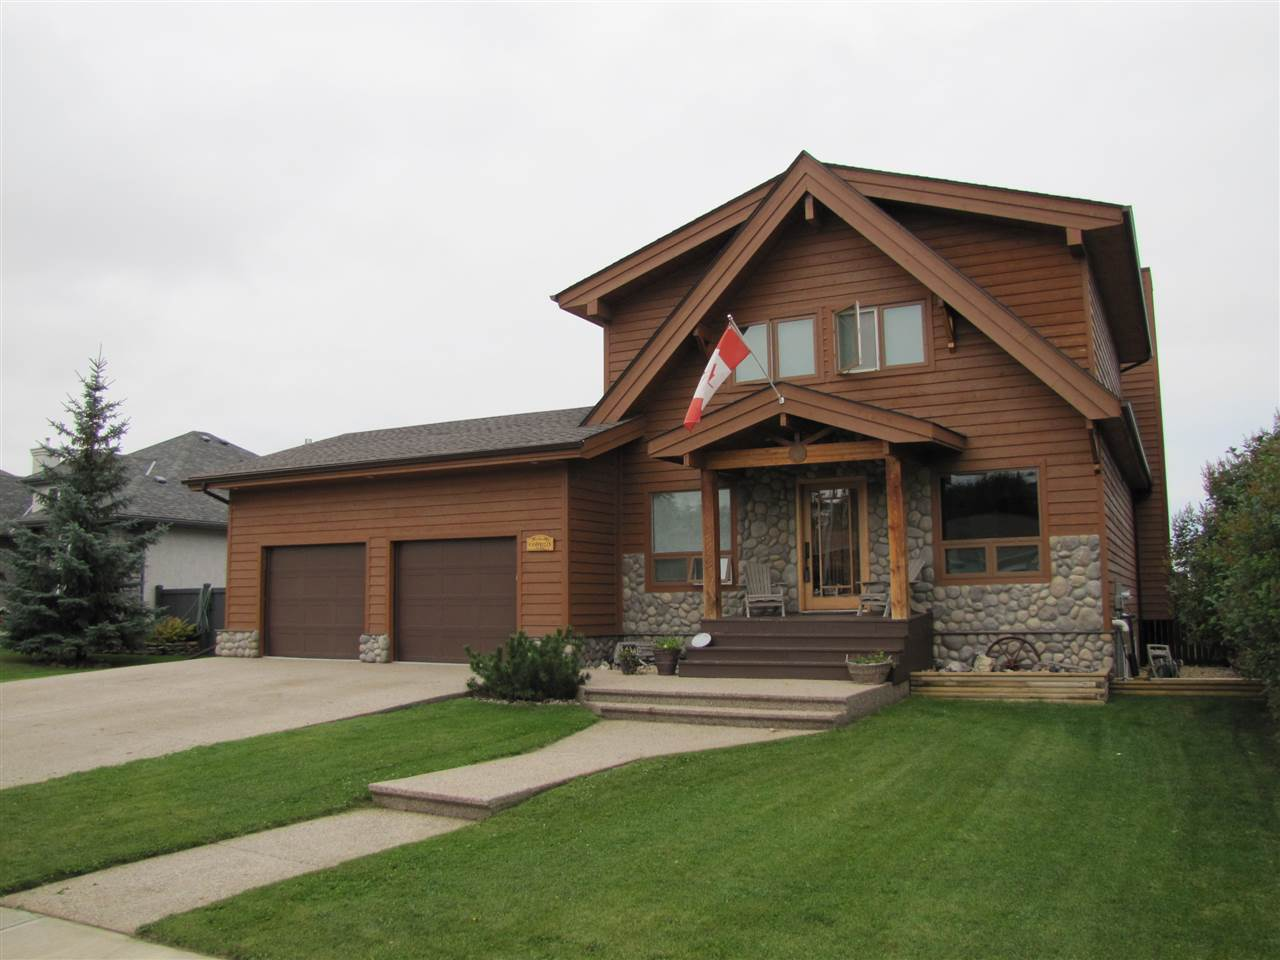 This 2009 built 2200 sq.ft. Architecturally designed open concept Post and Beam Lindal Cedar Home is situated in a desirable south side neighborhood in Vegreville on a 75 x 200 fenced and landscaped estate lot backing onto a natural pond and green space area.   Modern and Contemporary Design with special features throughout including a total of 3 bedrooms and 3 bathrooms, a Gourmet Kitchen, Superior appliances and fixtures, formal dining room and parlor, large deck, great room with rock accent wall, gas fireplace and wall mount TV, custom tile floors, Huge Vaulted Foyer and Loft area.  Basement is fully finished (2011) and contains a family room, 3rd bedroom, 3 pce bath and large storage/utility room.  Large double attached heated garage with exposed aggregate parking pad and walk.  This professional and custom built home has energy efficient in floor heating and passive solar design.  Eco-Designed for its  Environment and Location with Beautiful Views from Every Window.